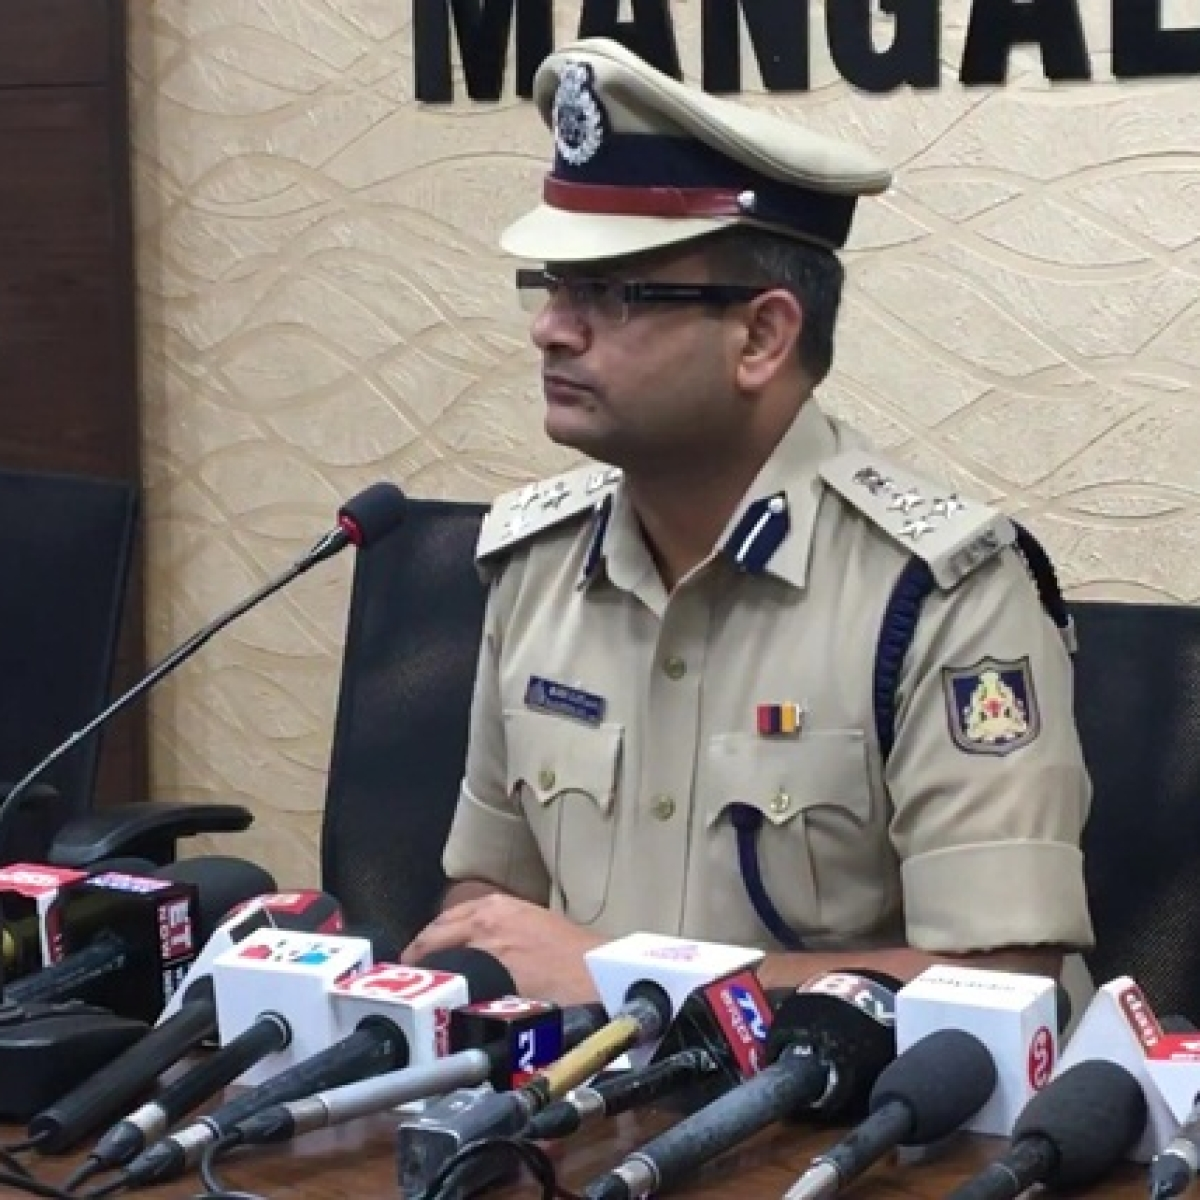 They've been safely dropped at Kasargod police station: Mangaluru CP on detention of Kerala scribes